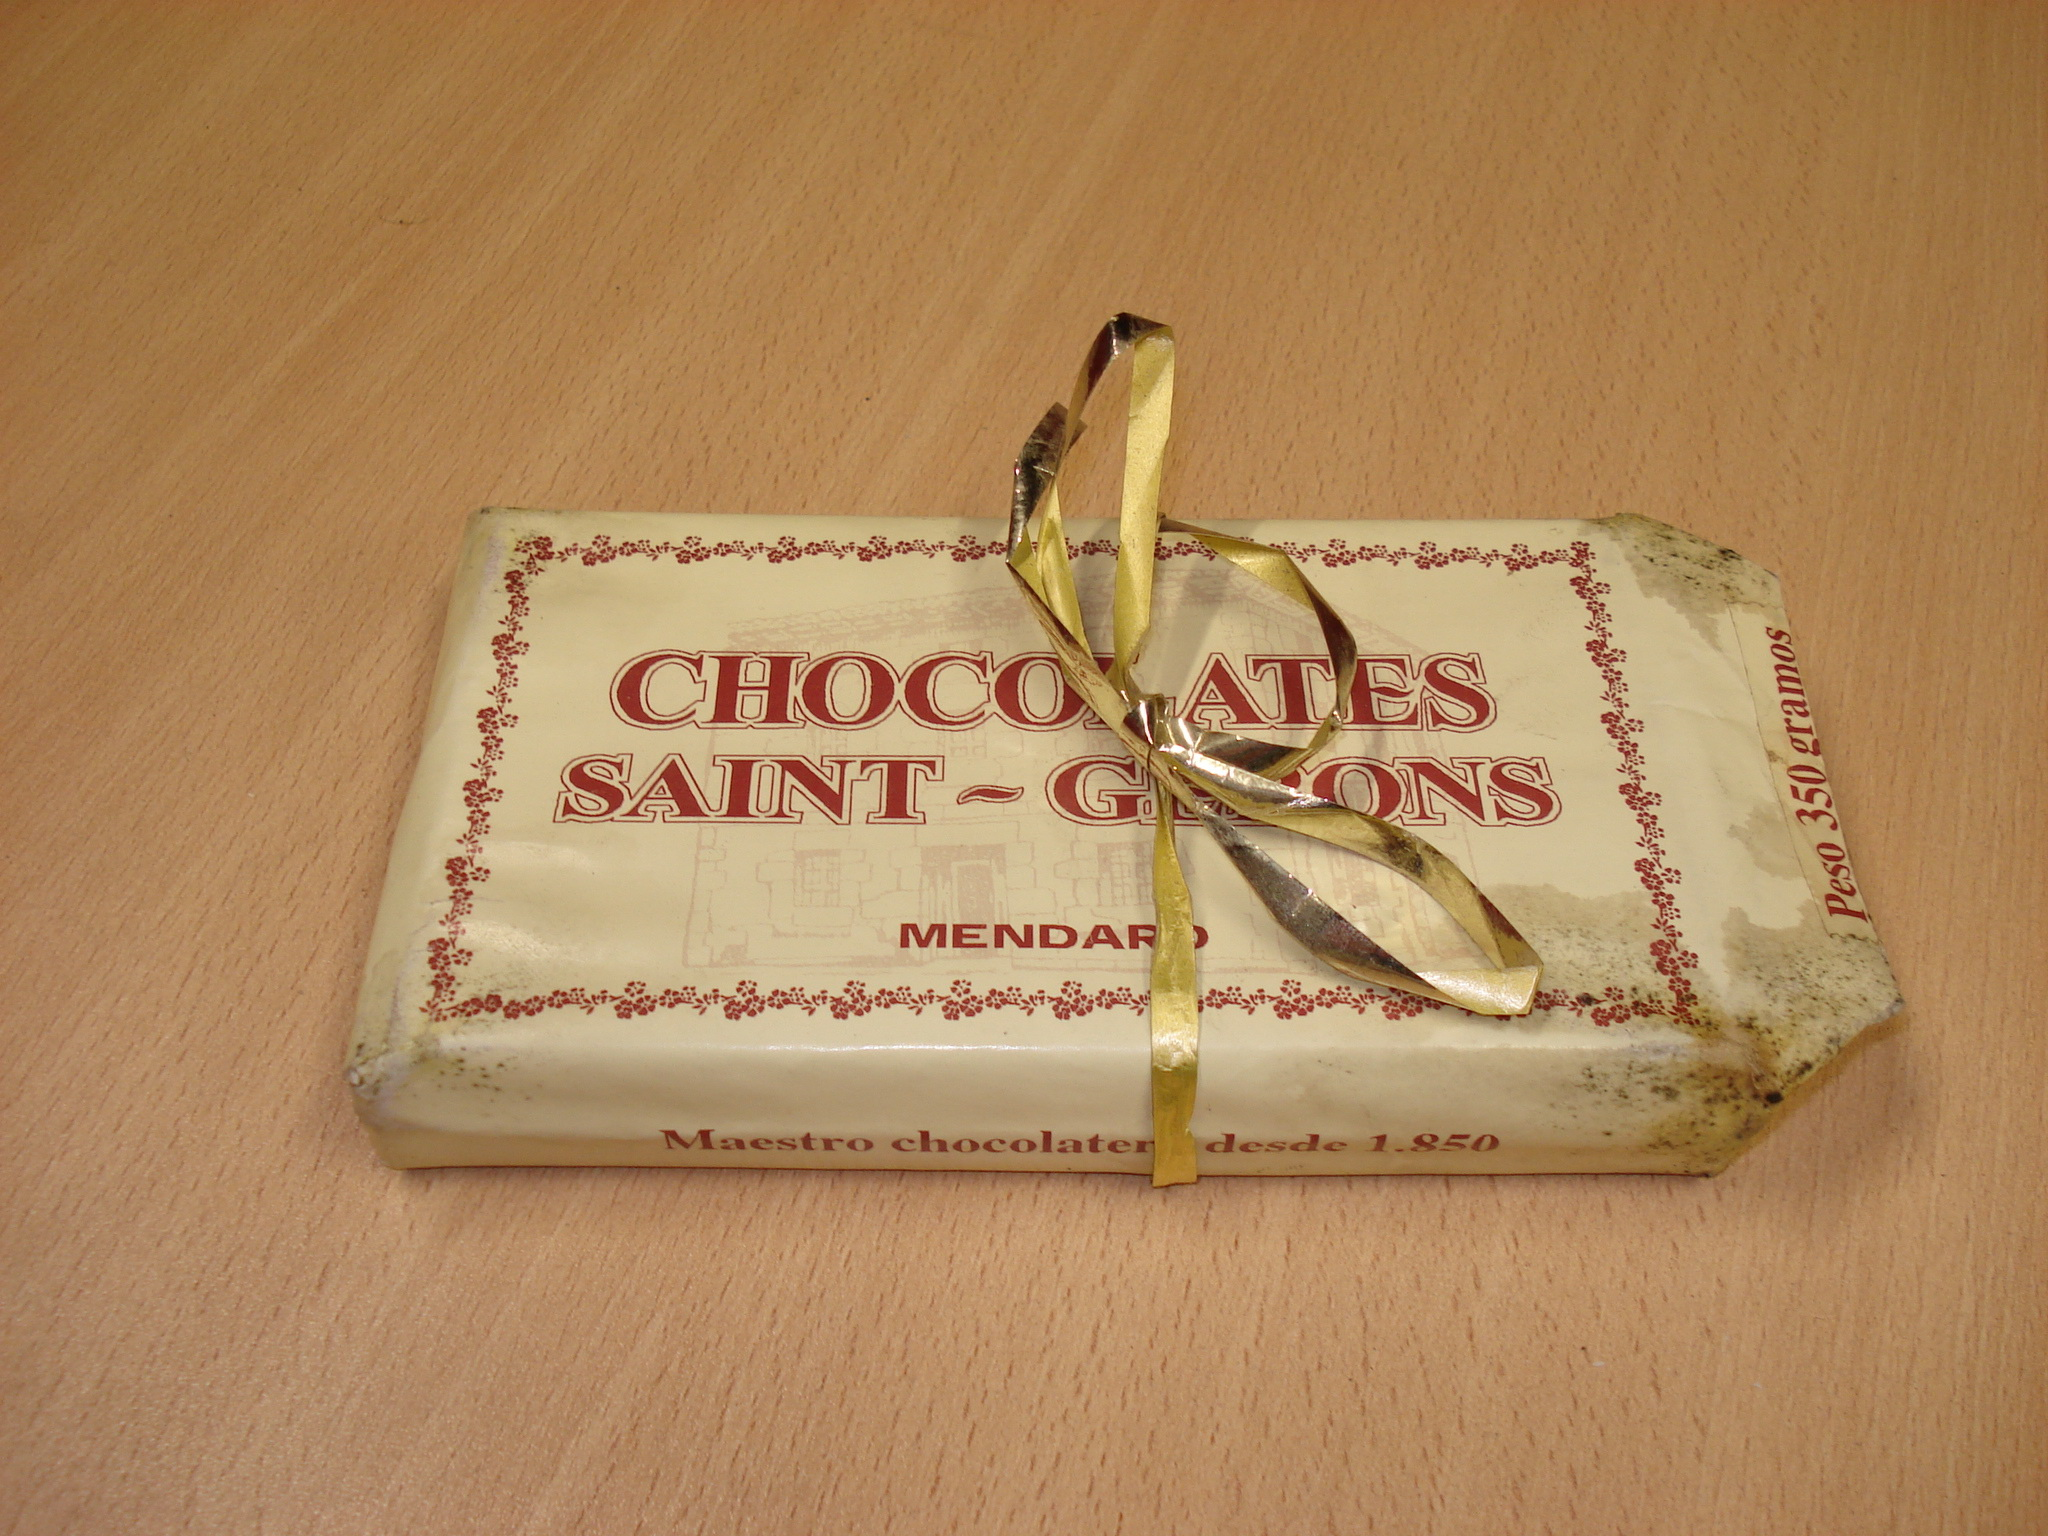 Tableta de chocolate a la taza CHOCOLATES DE MENDARO SAINT-GERONS